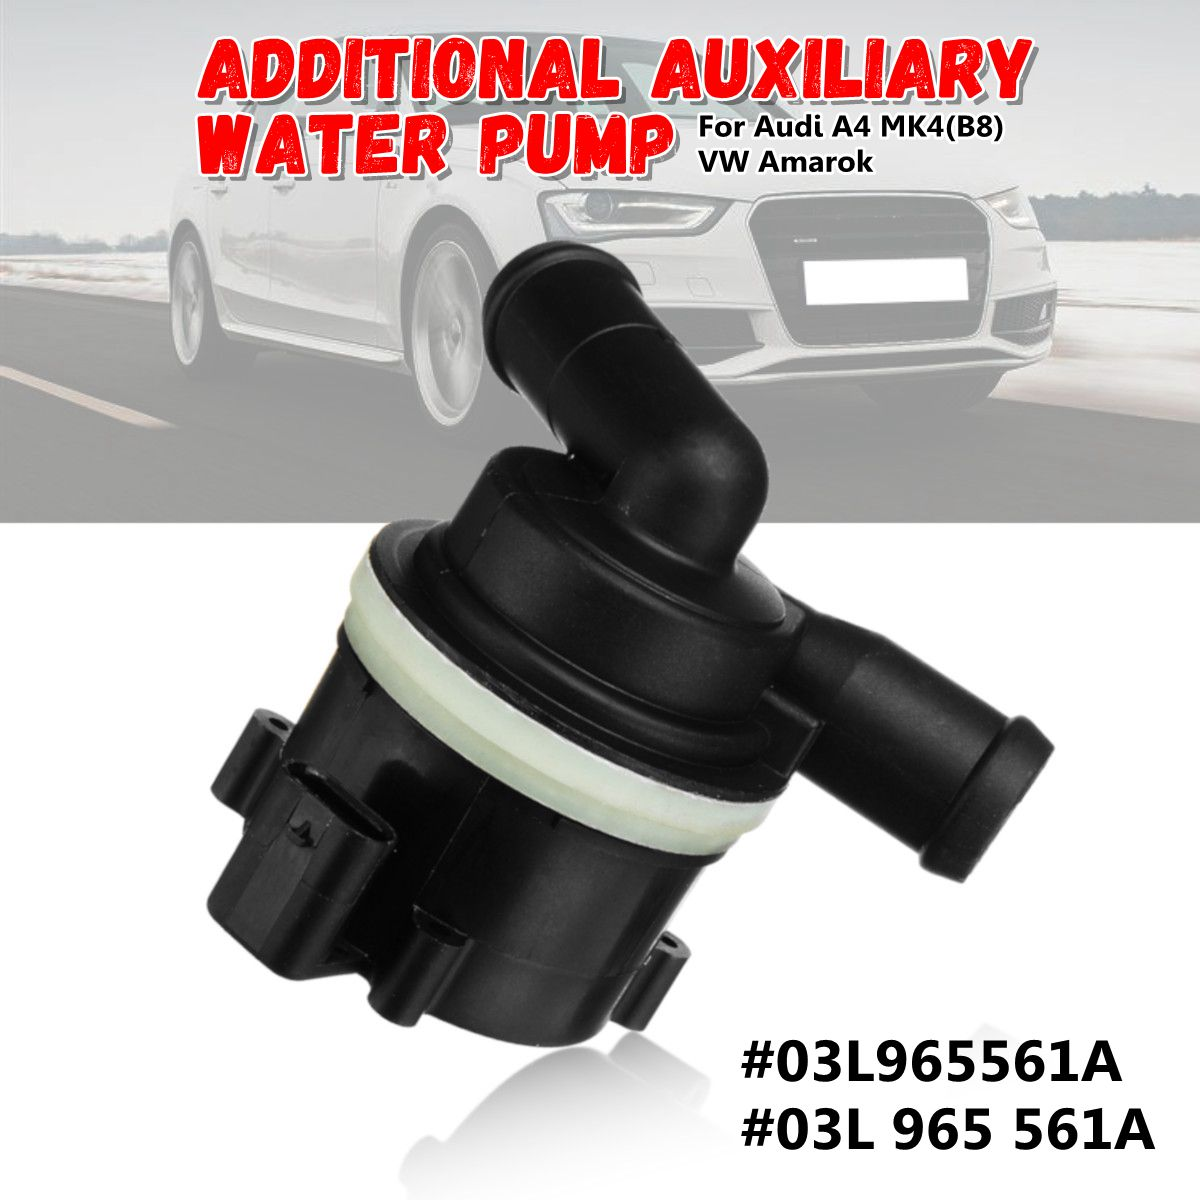 03L965561A 03L 965 561A Secondary Coolant Additional Auxiliary Water Pump for Audi A4 MK4(B8) for VW Amarok 2008-2015